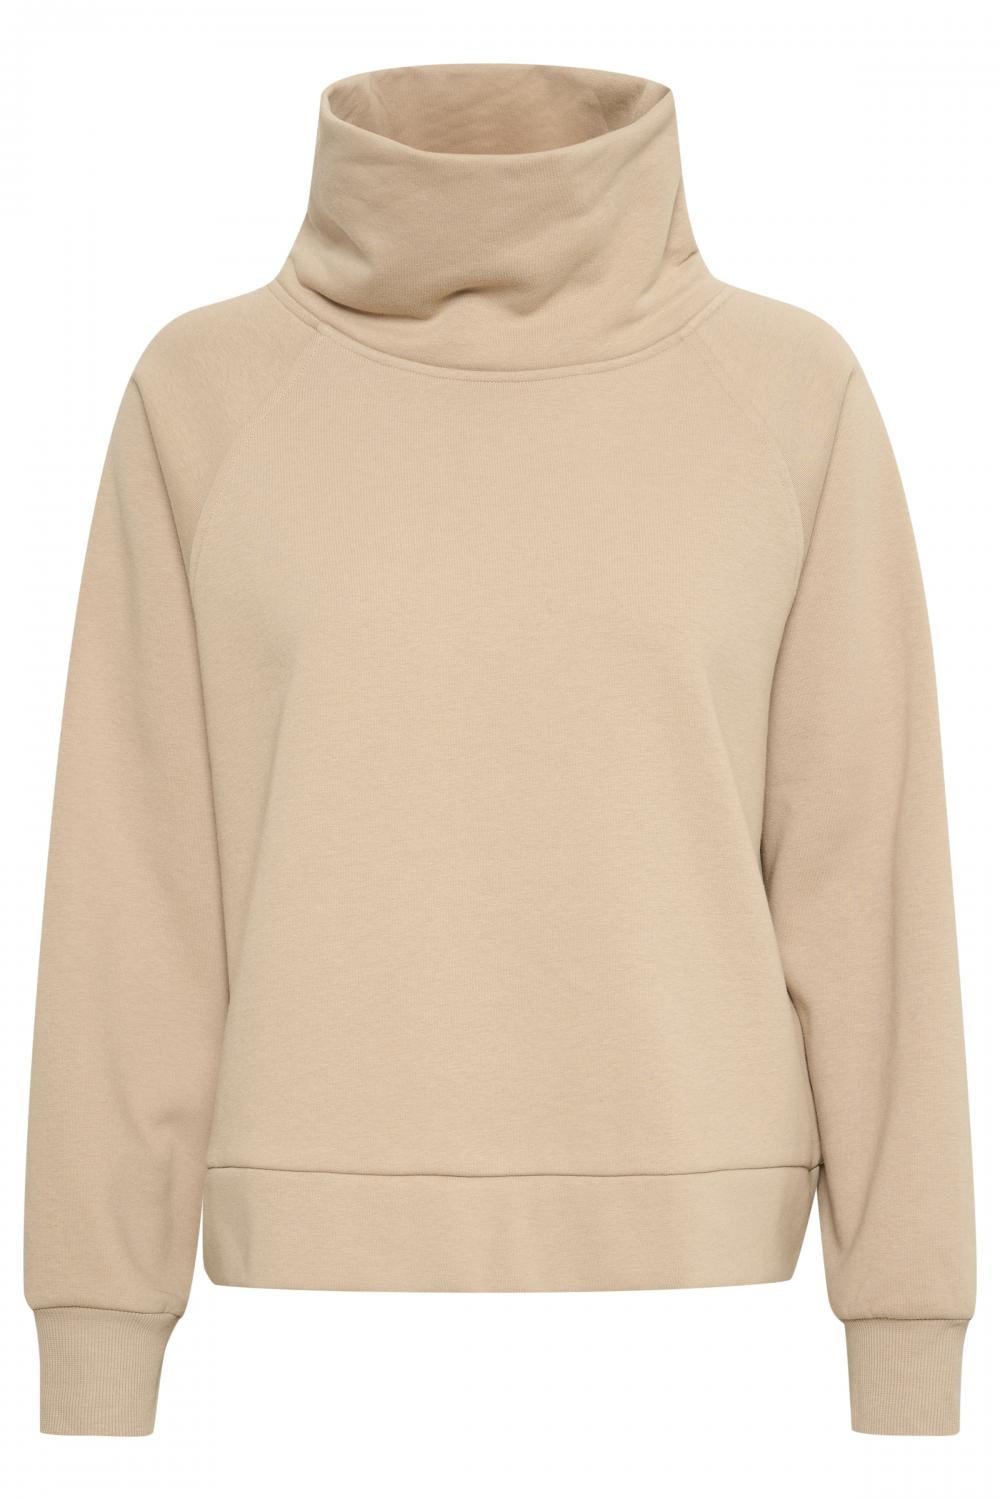 LukaPW SW Simply Taupe